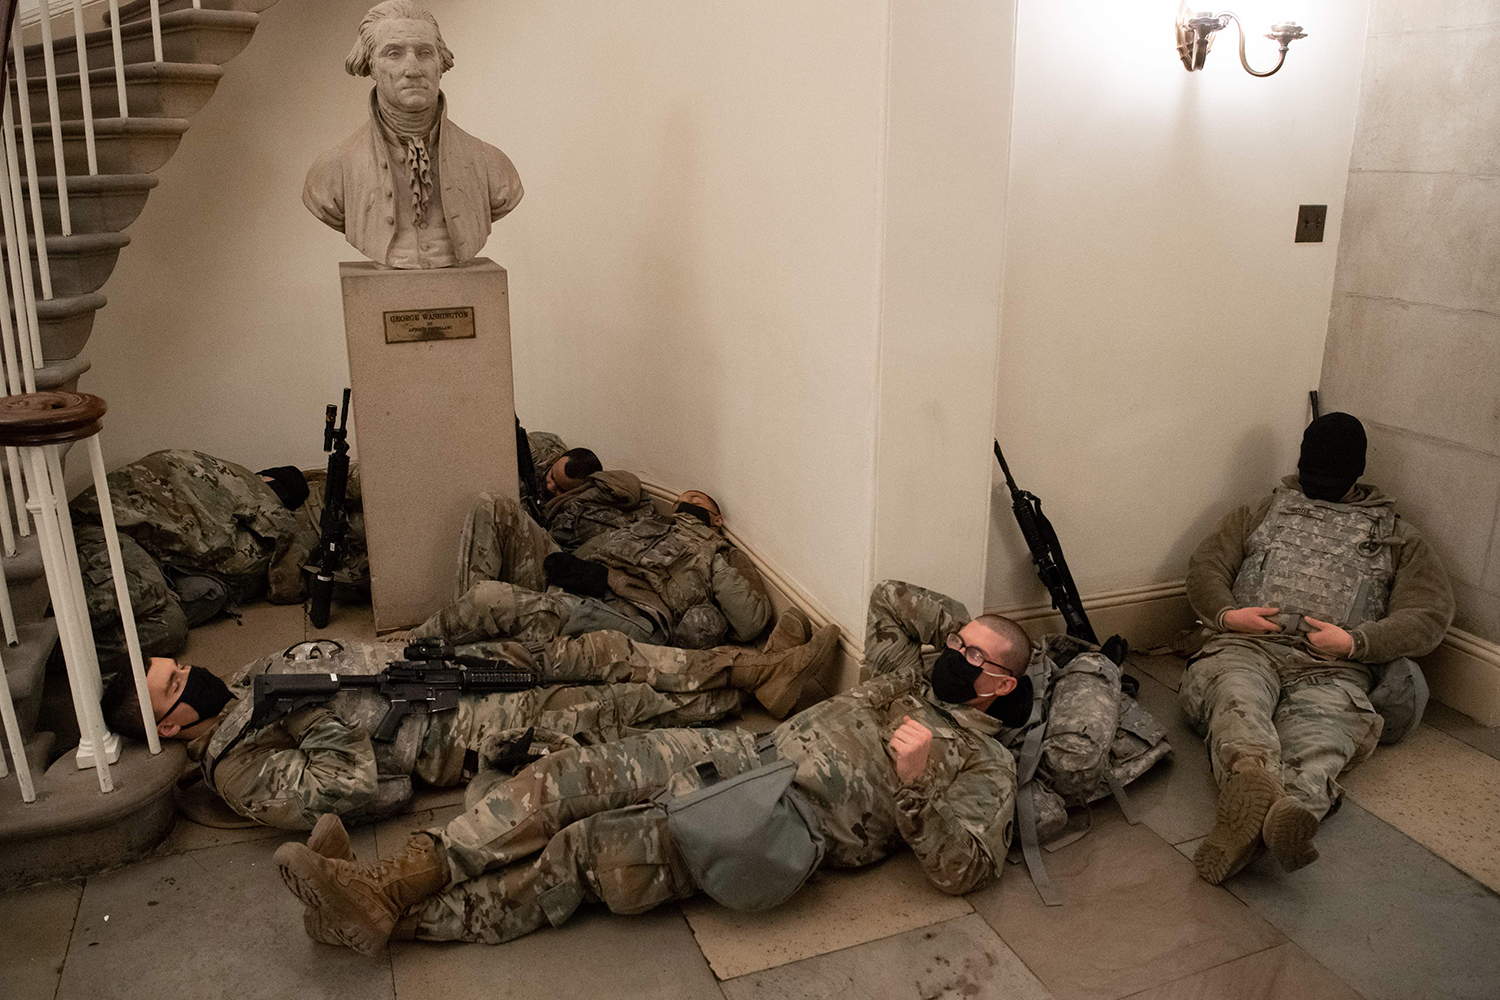 Members of the National Guard rest in the Rotunda of the U.S. Capitol in Washington on Jan. 13, ahead of an expected House vote impeaching President Donald Trump. SAUL LOEB/AFP via Getty Images